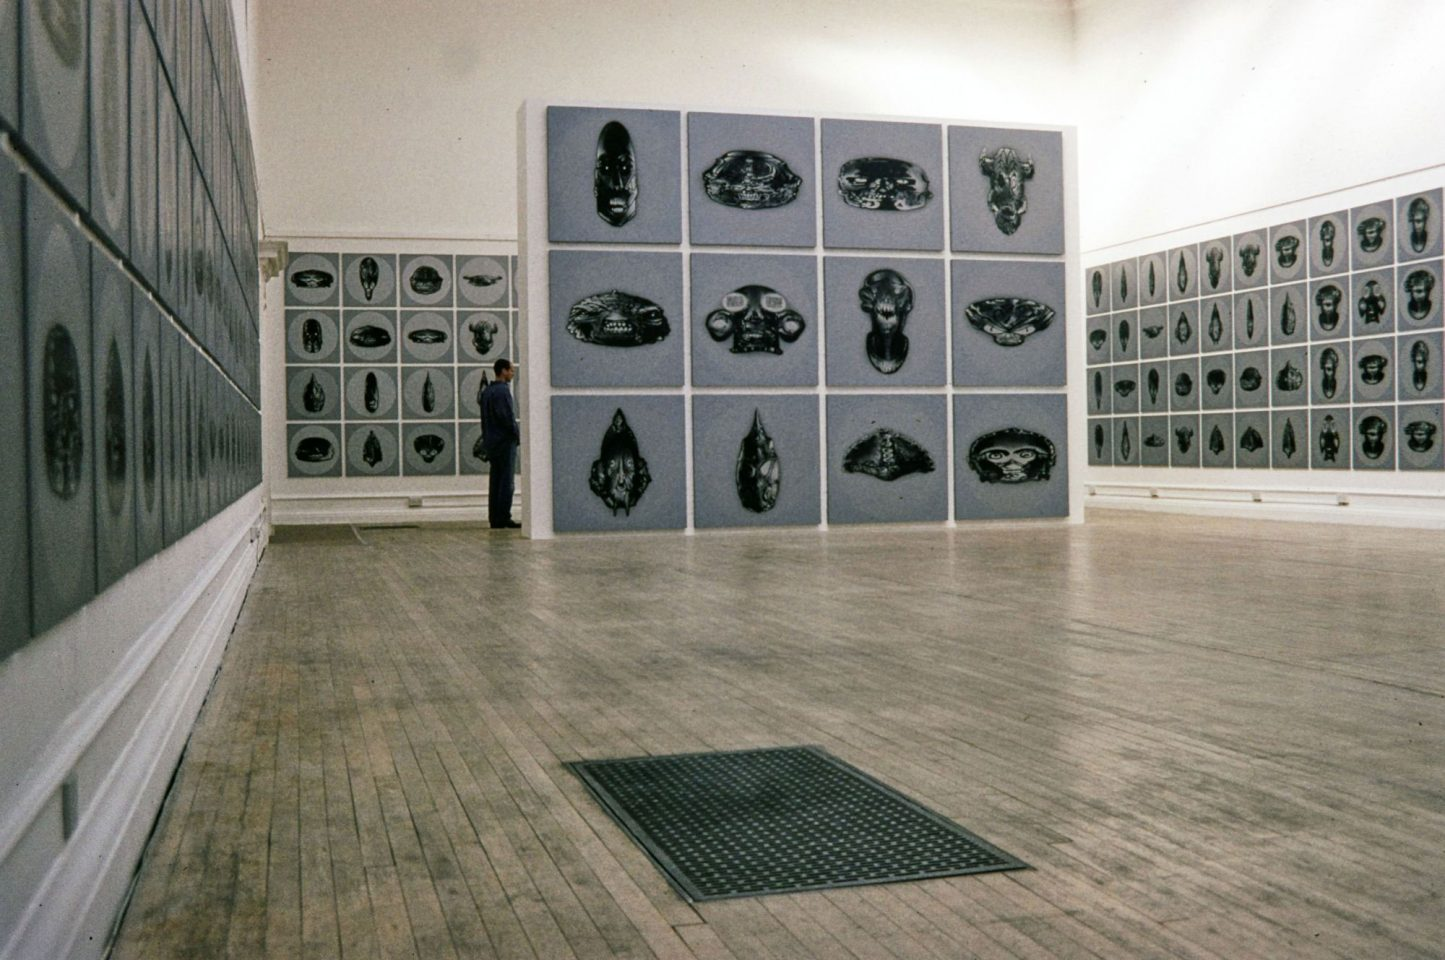 Installation view of 1995 John Dutton & Peter Snadden's exhibition Bad Brains.